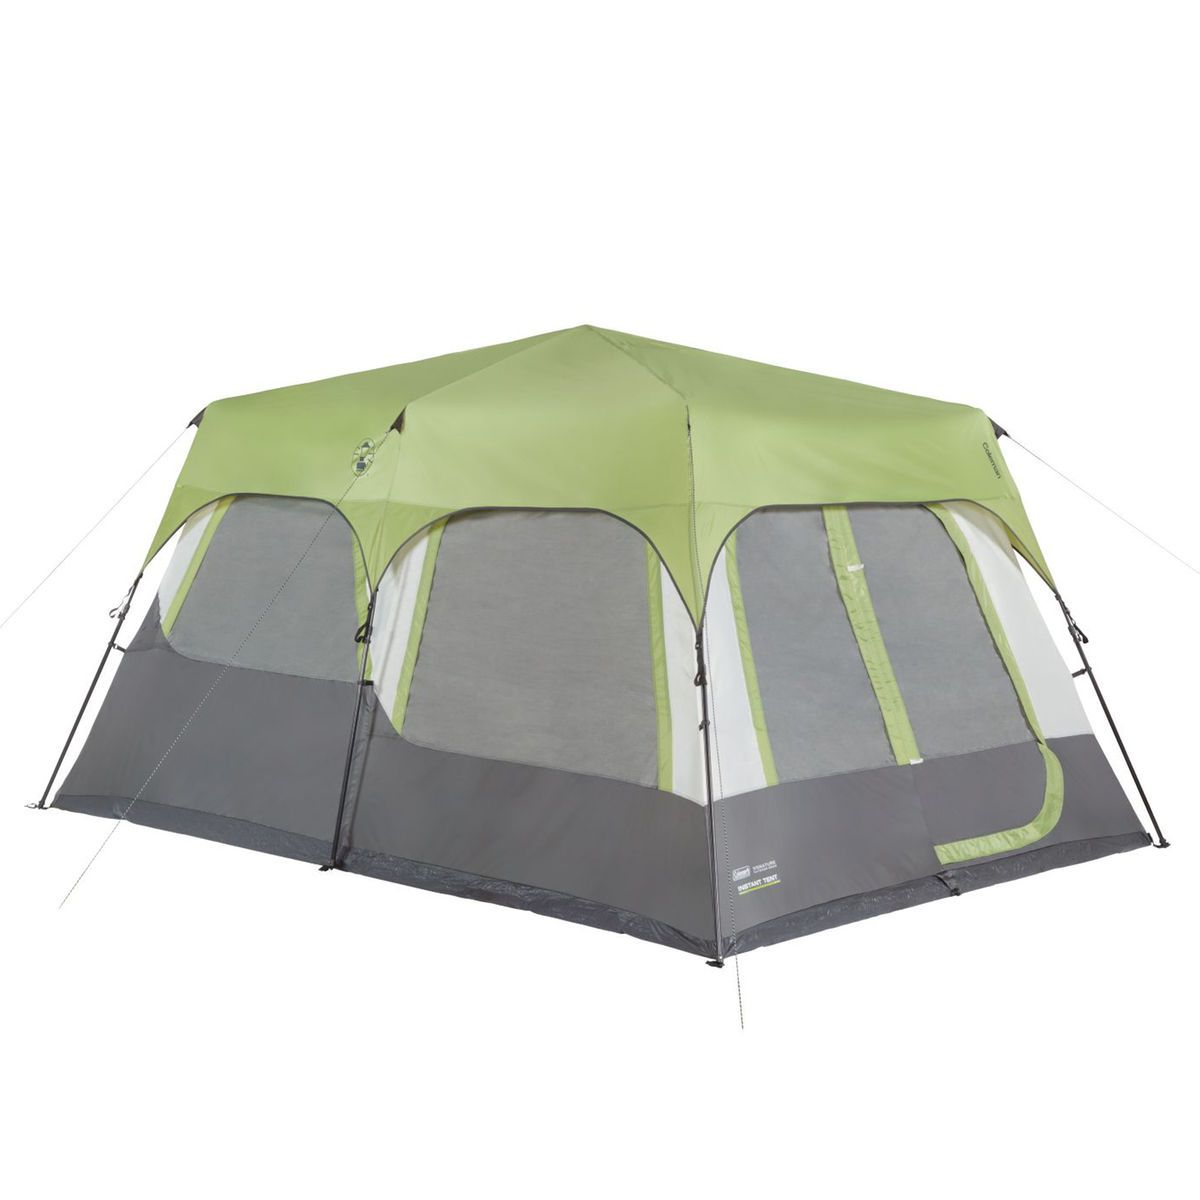 Coleman Instant Cabin 10 Tent With Fly 10 Person 825259 Gander Mountain Cabin Tent Coleman Tent 8 Person Tent